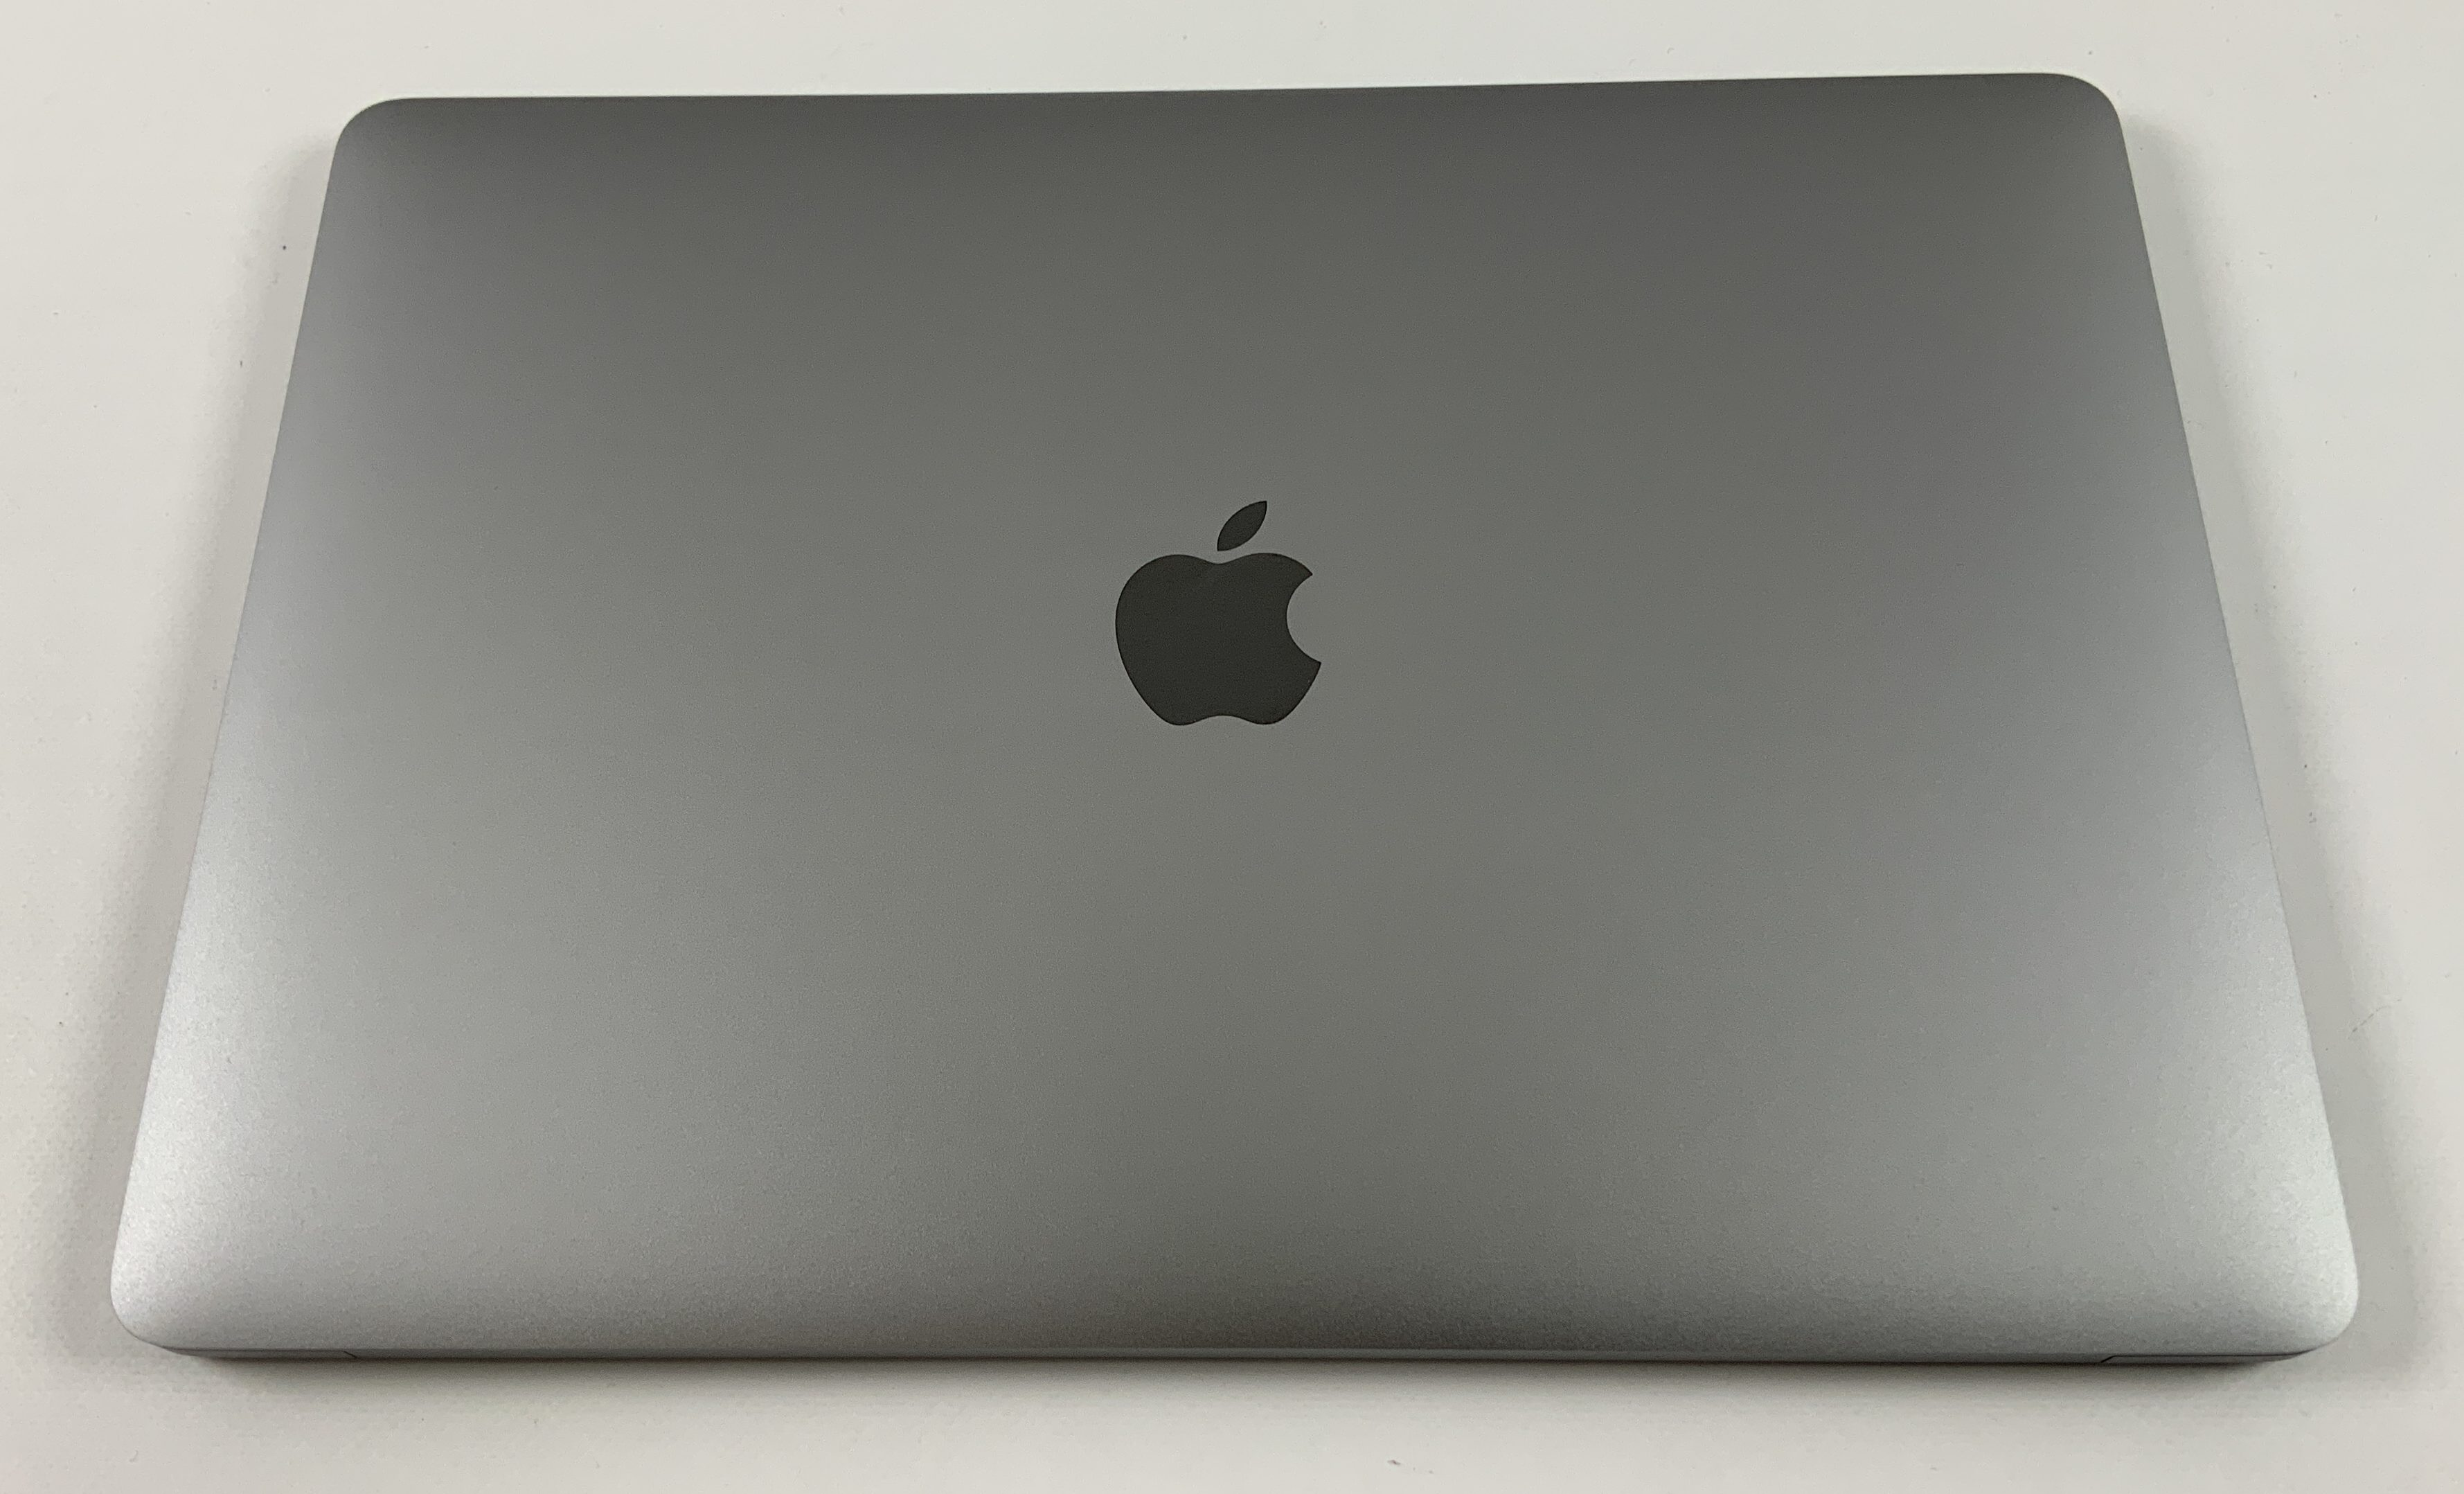 "MacBook Pro 13"" 2TBT Mid 2017 (Intel Core i5 2.3 GHz 8 GB RAM 256 GB SSD), Space Gray, Intel Core i5 2.3 GHz, 8 GB RAM, 256 GB SSD, image 2"